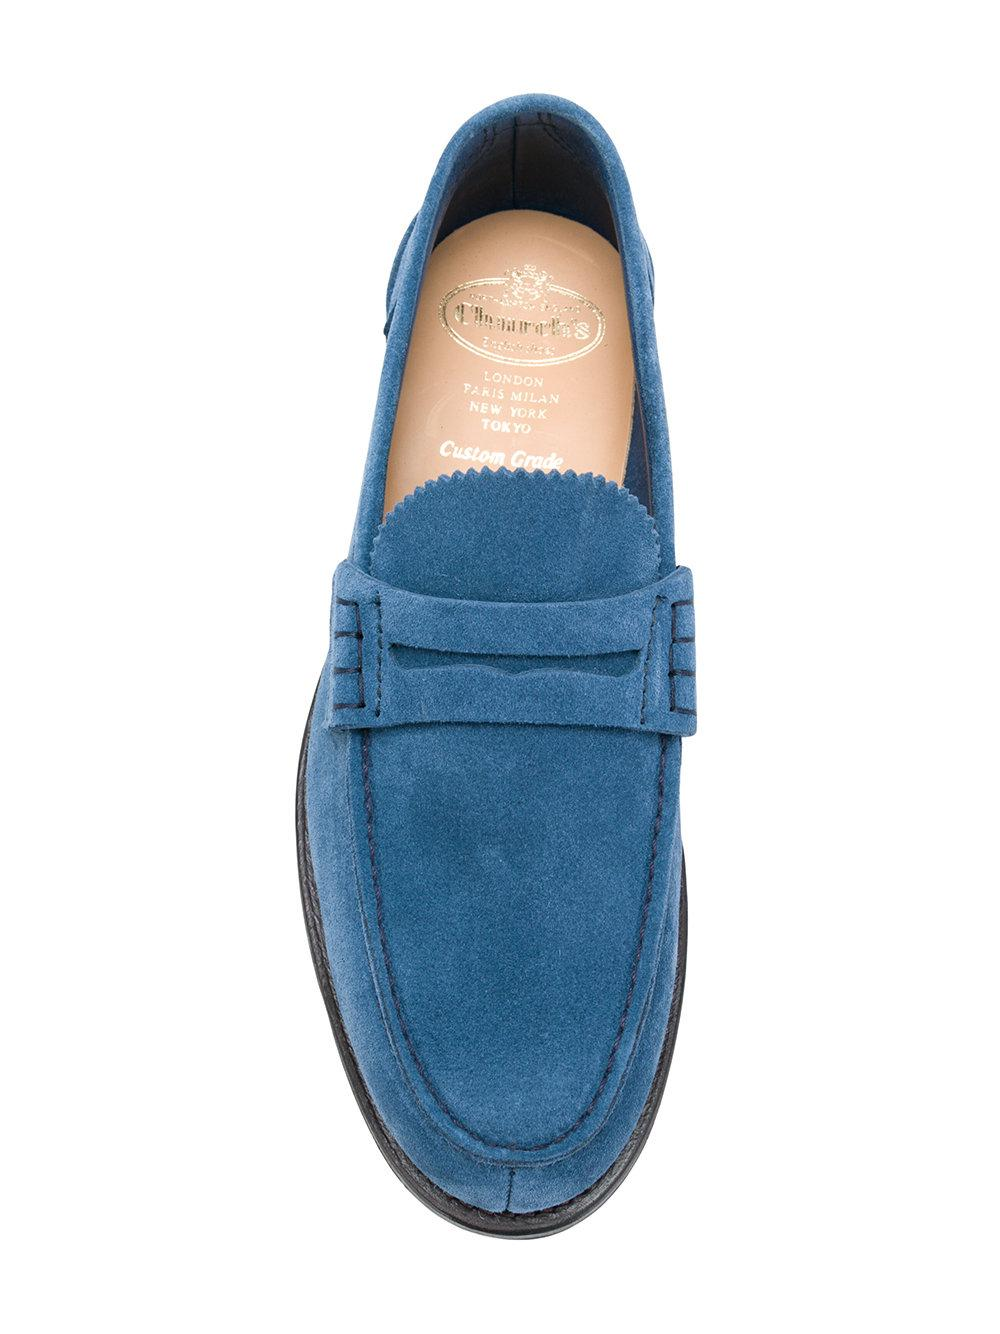 73ce86dfe97 Lyst - Church s Pembrey Penny Loafers in Blue for Men